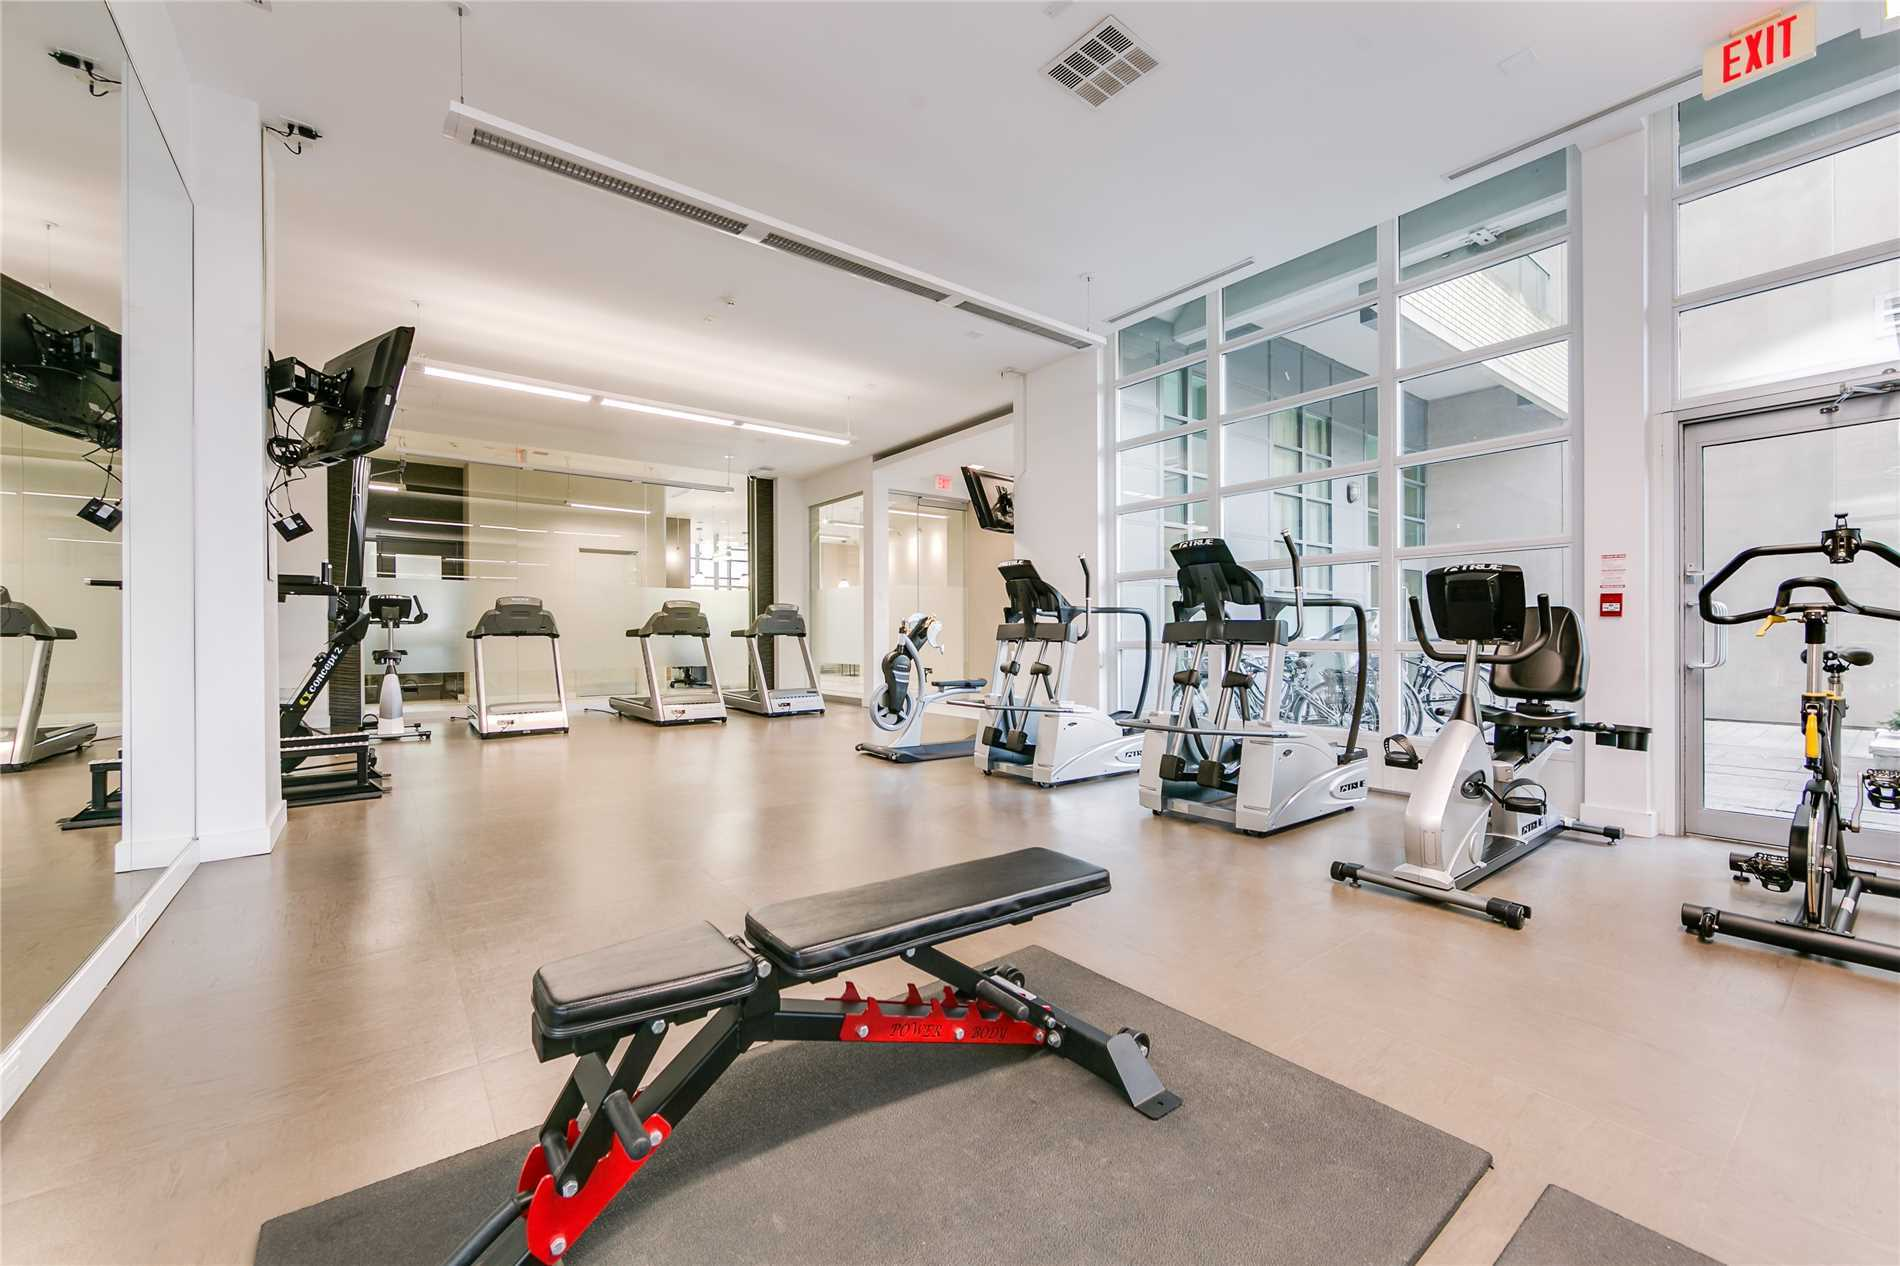 Gym with treadmills and exercise bike at Madison Avenue Lofts.